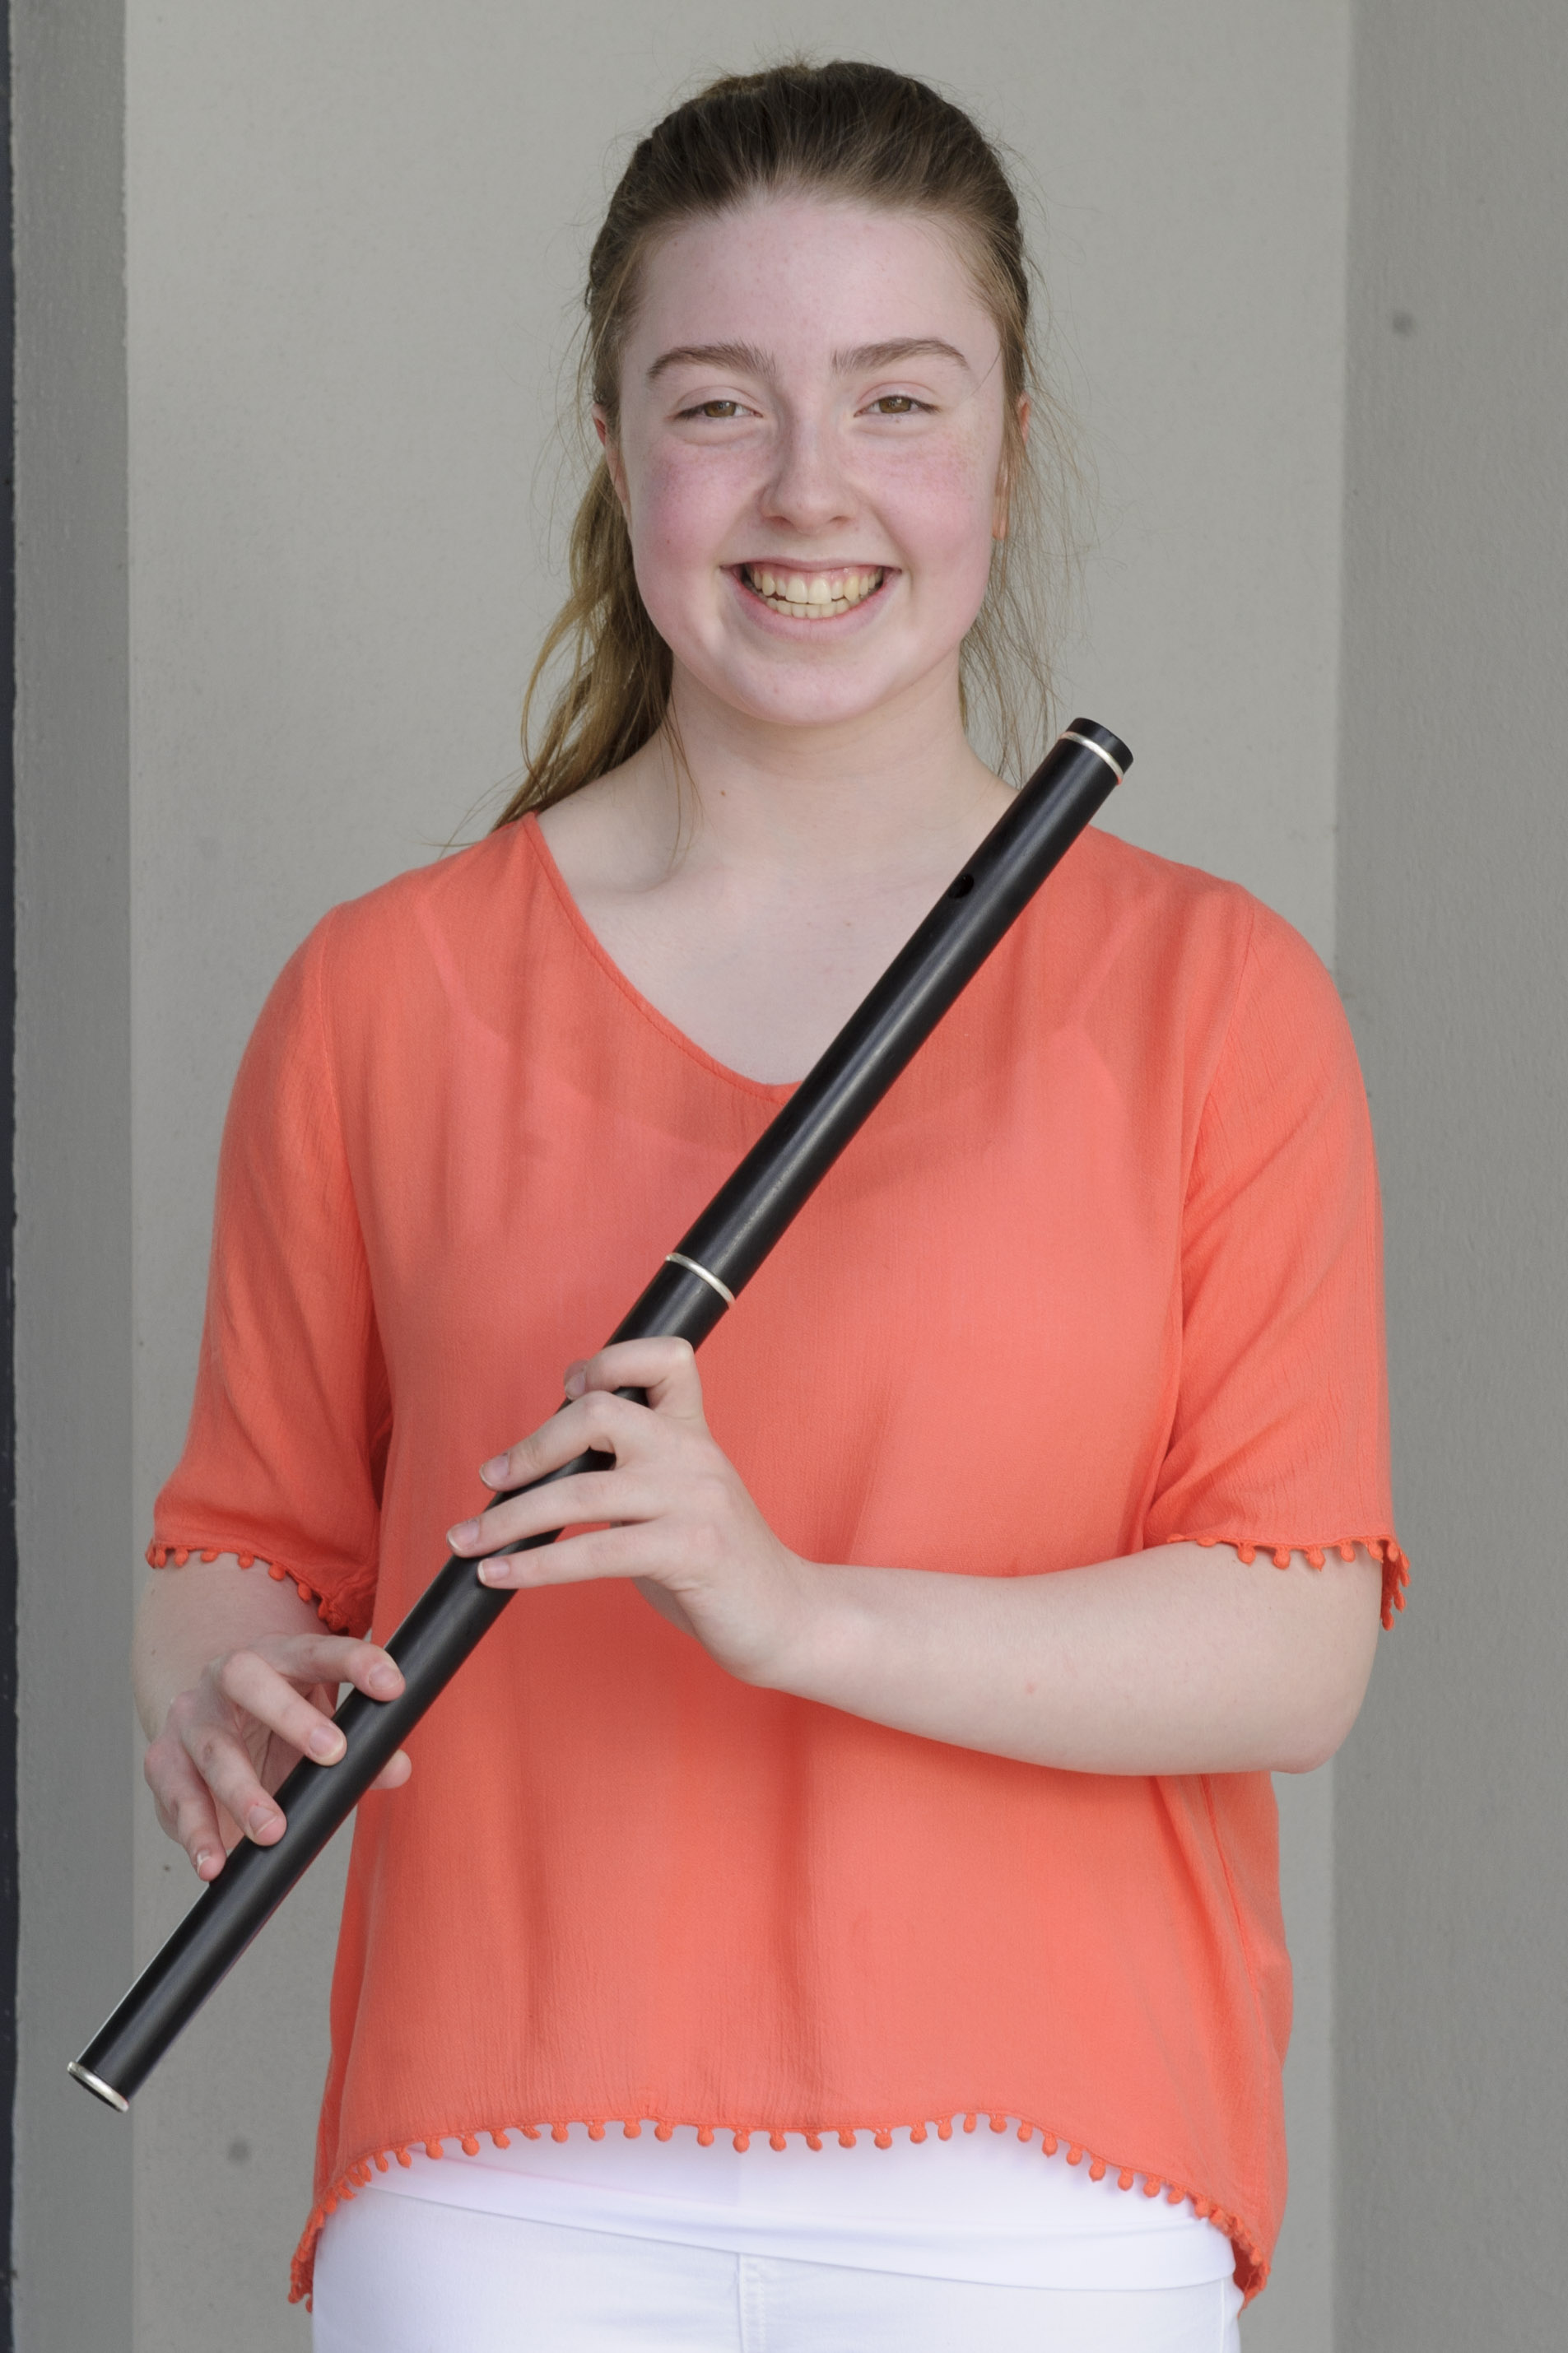 Caoimhe McMahon, Corcaghan CCE, who was winner of the U-18 Flute Slow Air and 2nd in the Flute Dance Tune. ©Rory Geary/The Northern Standard